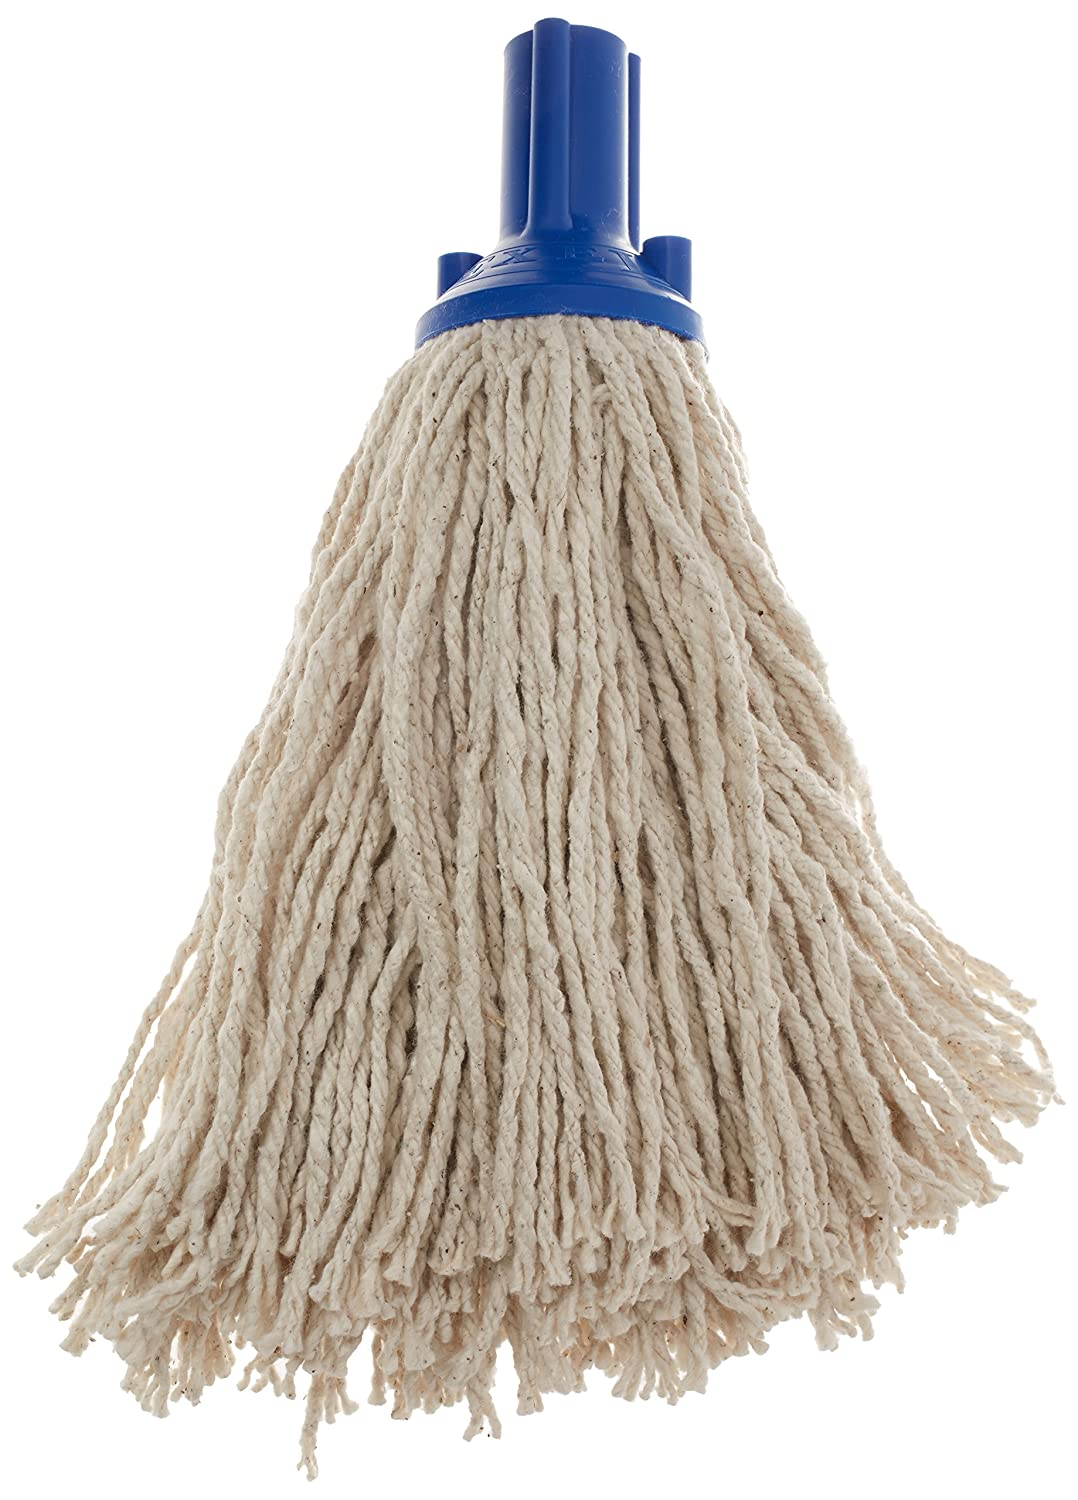 Professional Cotton Mop head with YELLOW plastic socket.220 GRAM EACH PACK  5